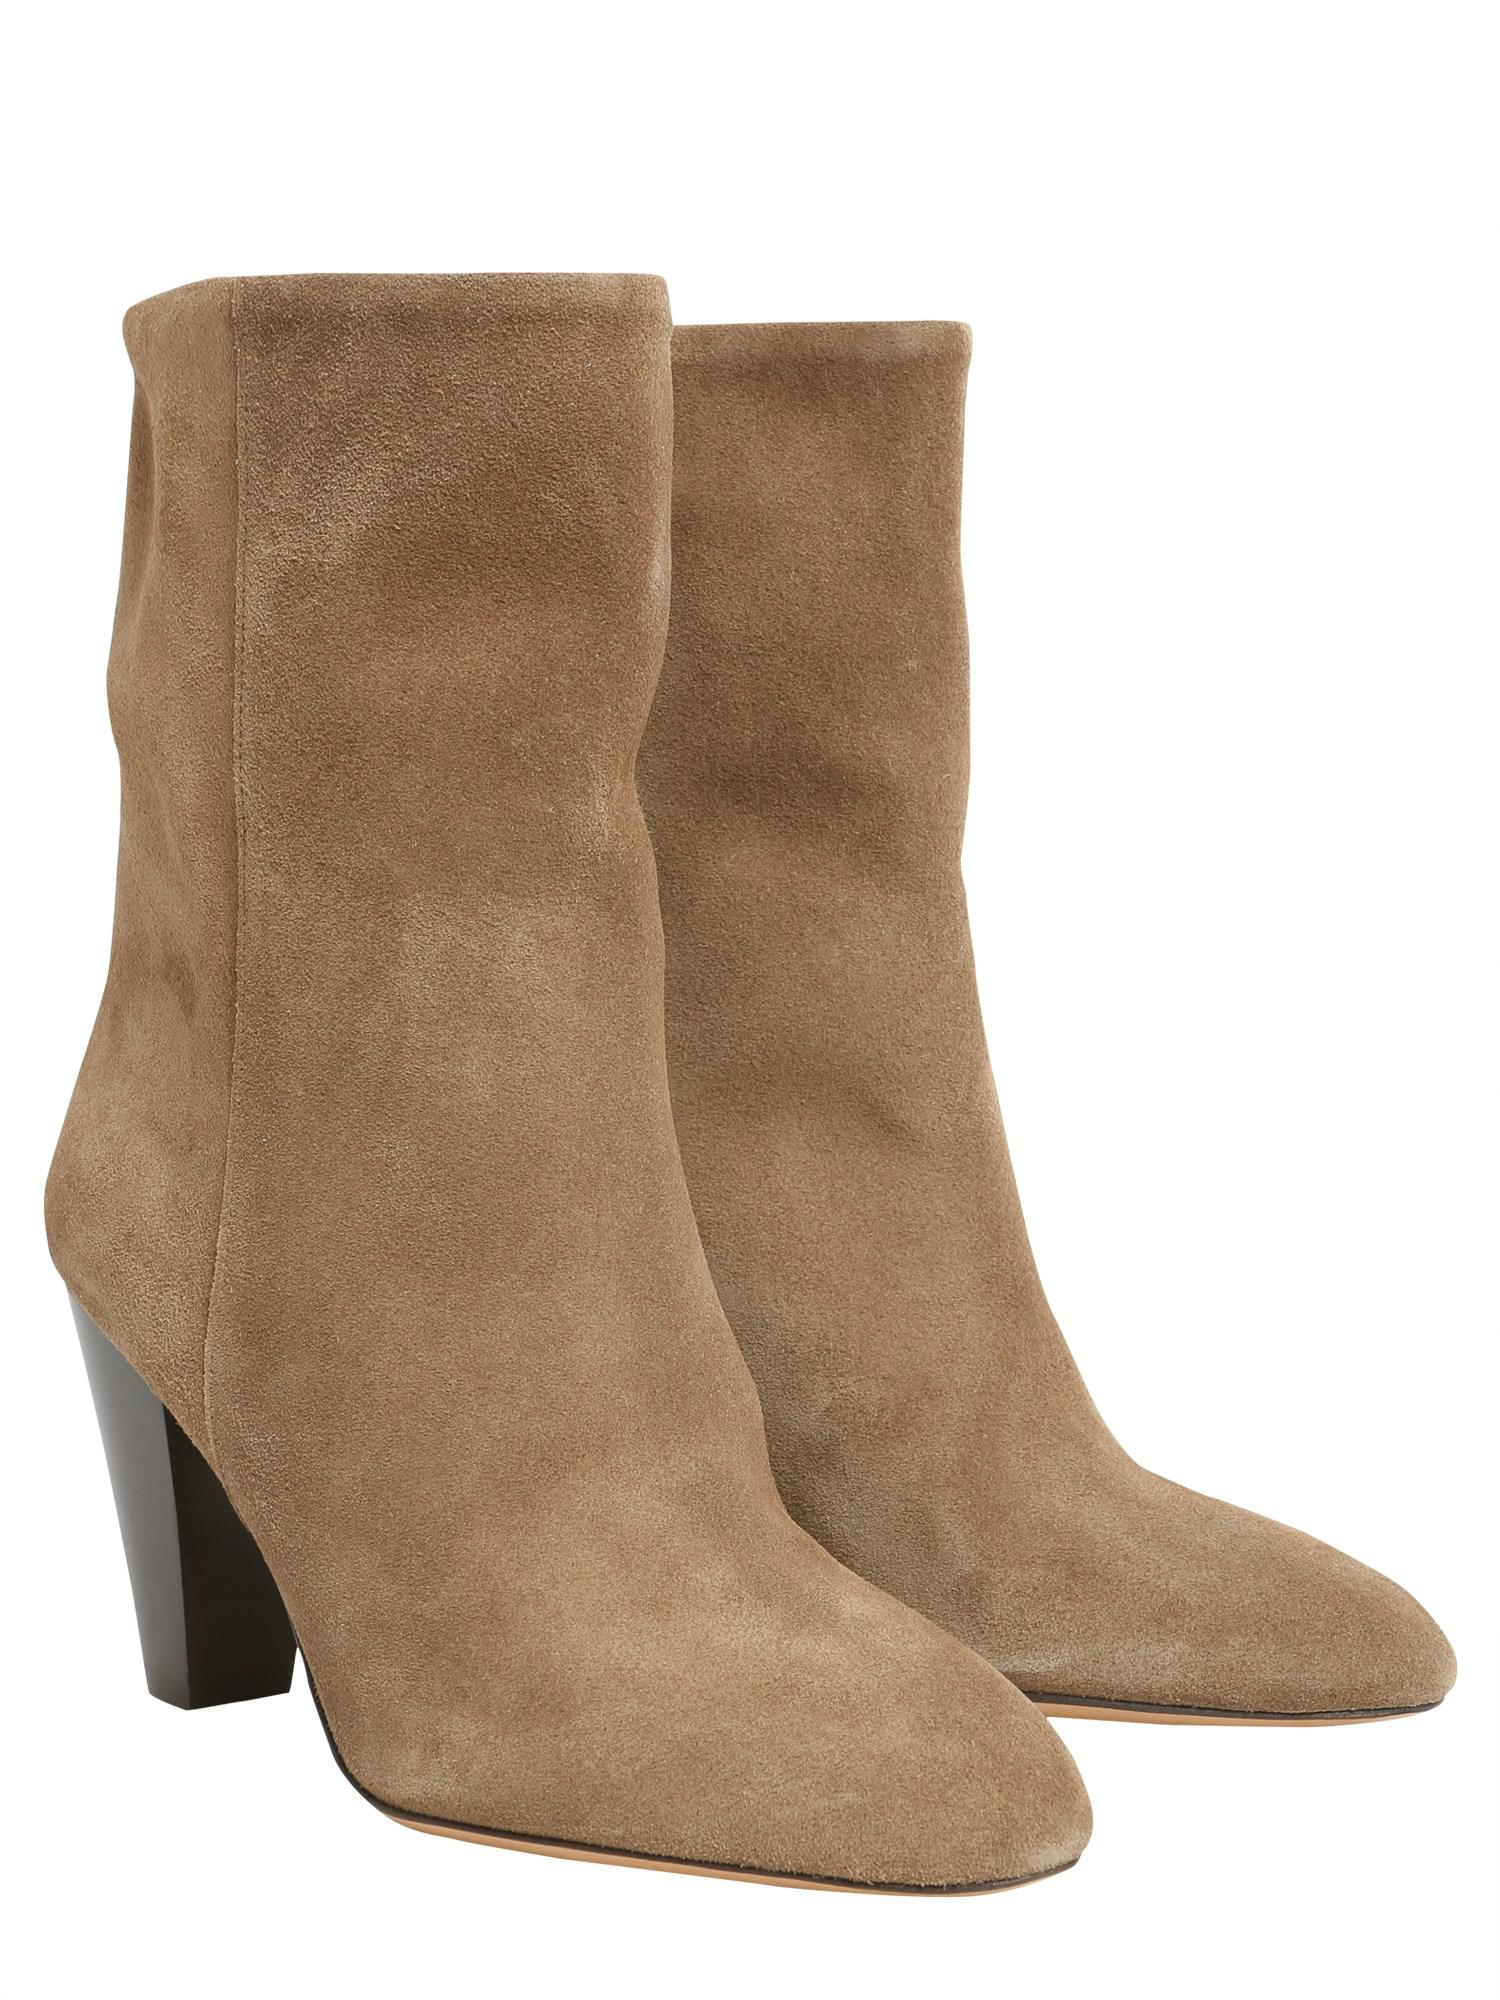 Read more Beige Suede Darilay Boots